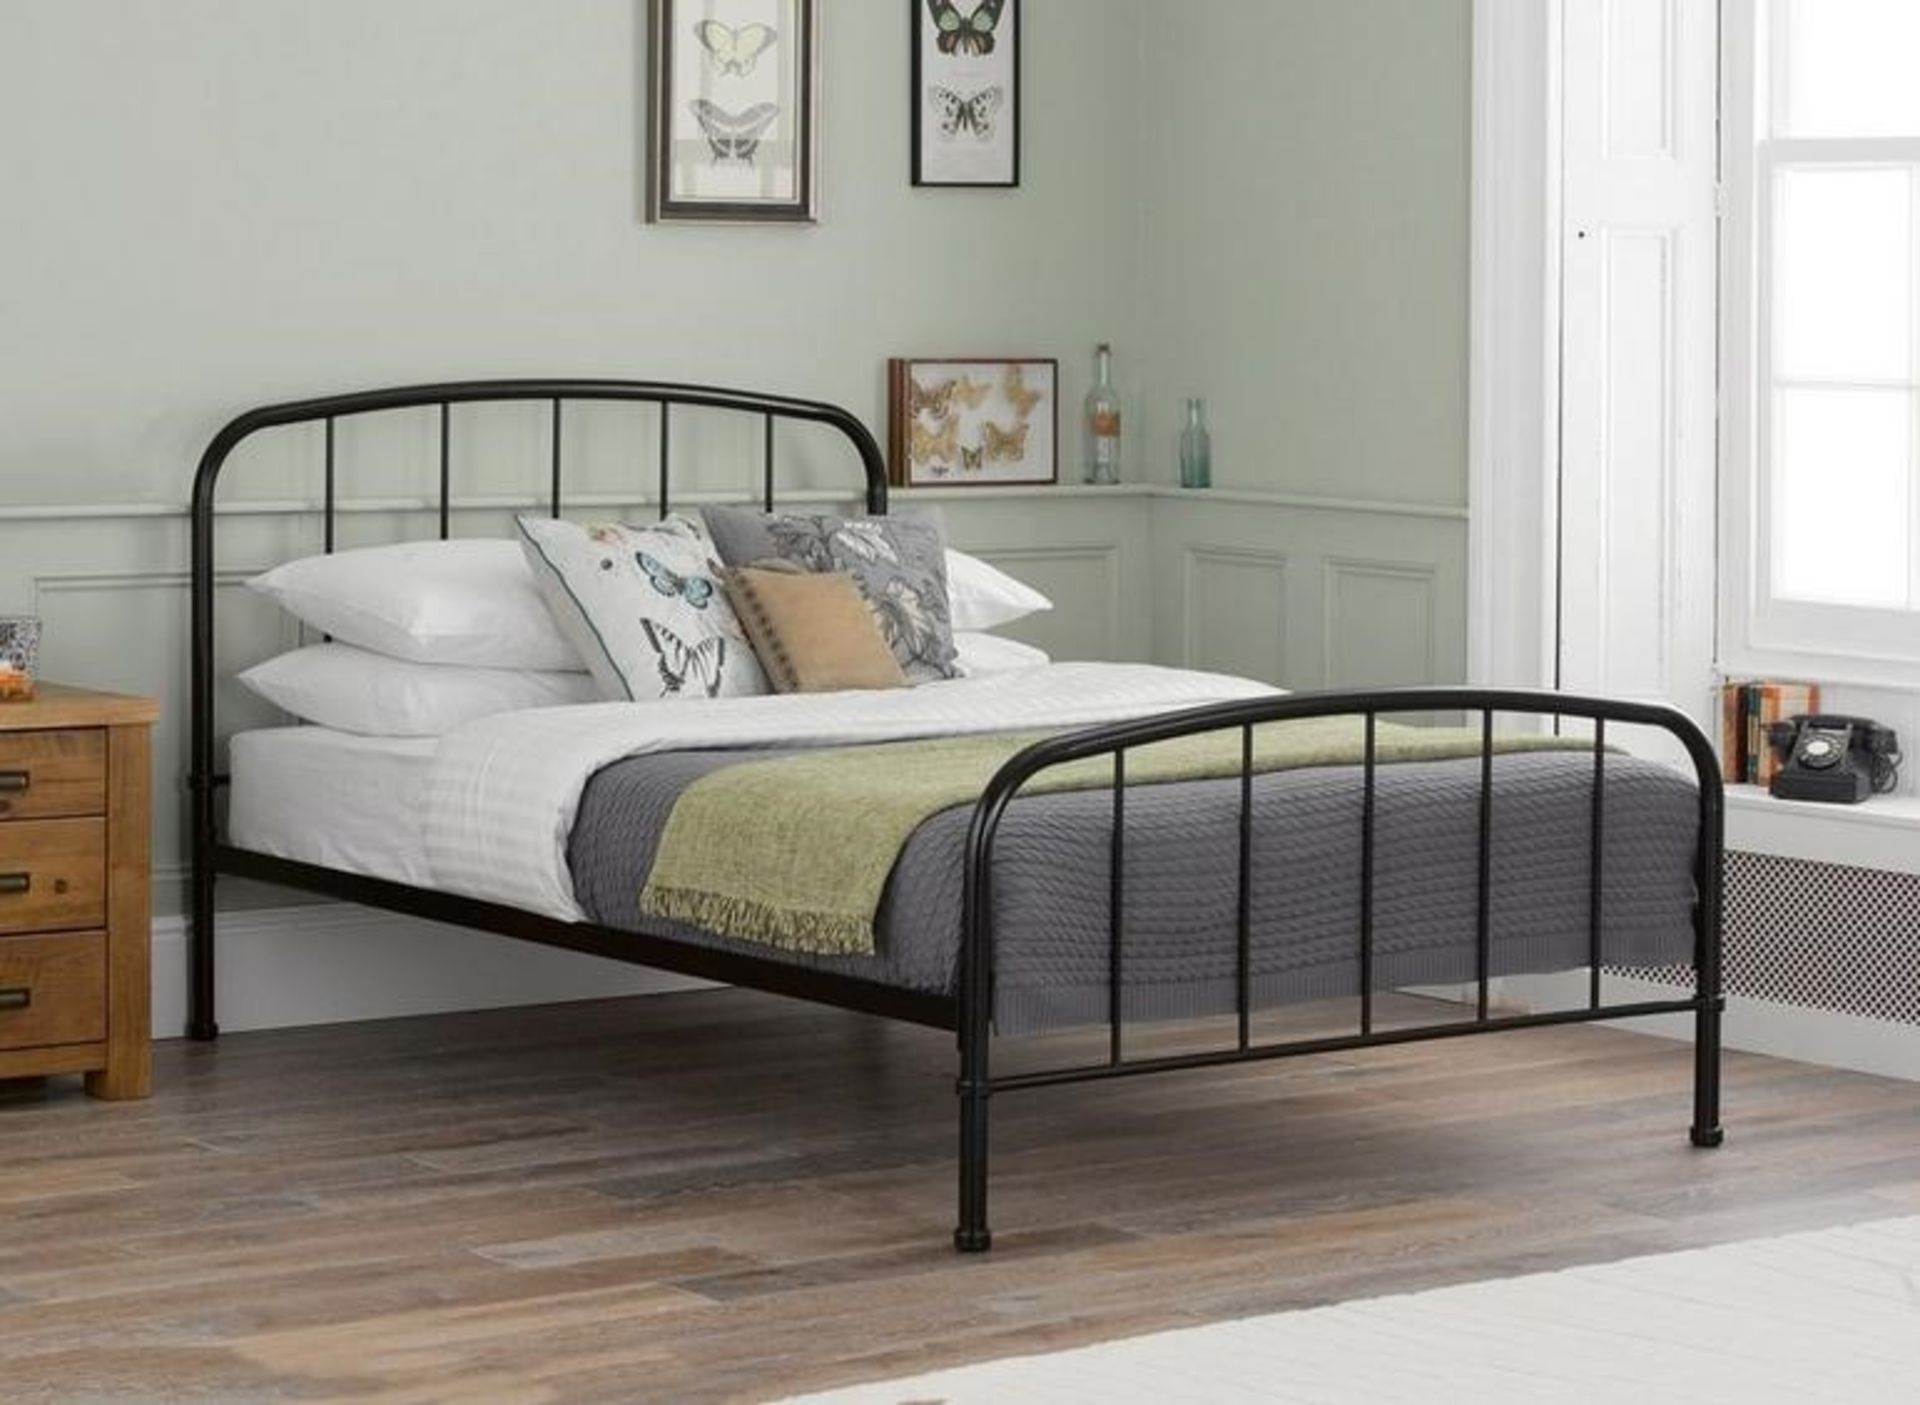 Lot 2207 - 1 BOXED SOL METAL DOUBLE BED FRAME IN BLACK / RRP £249.99 (PUBLIC VIEWING AVAILABLE)